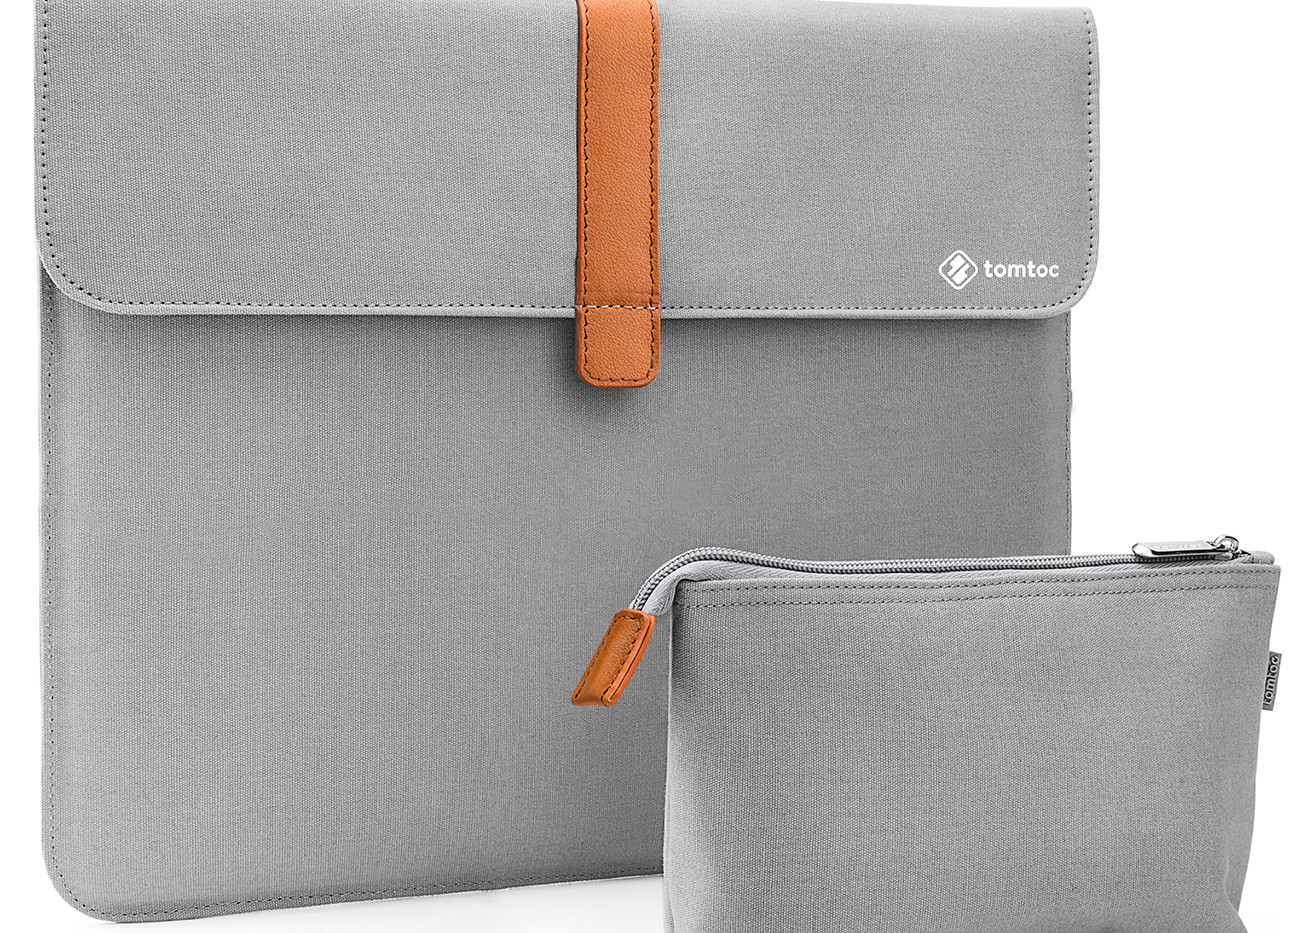 Envelope Sleeve with Accessory Pouch. Light Grey